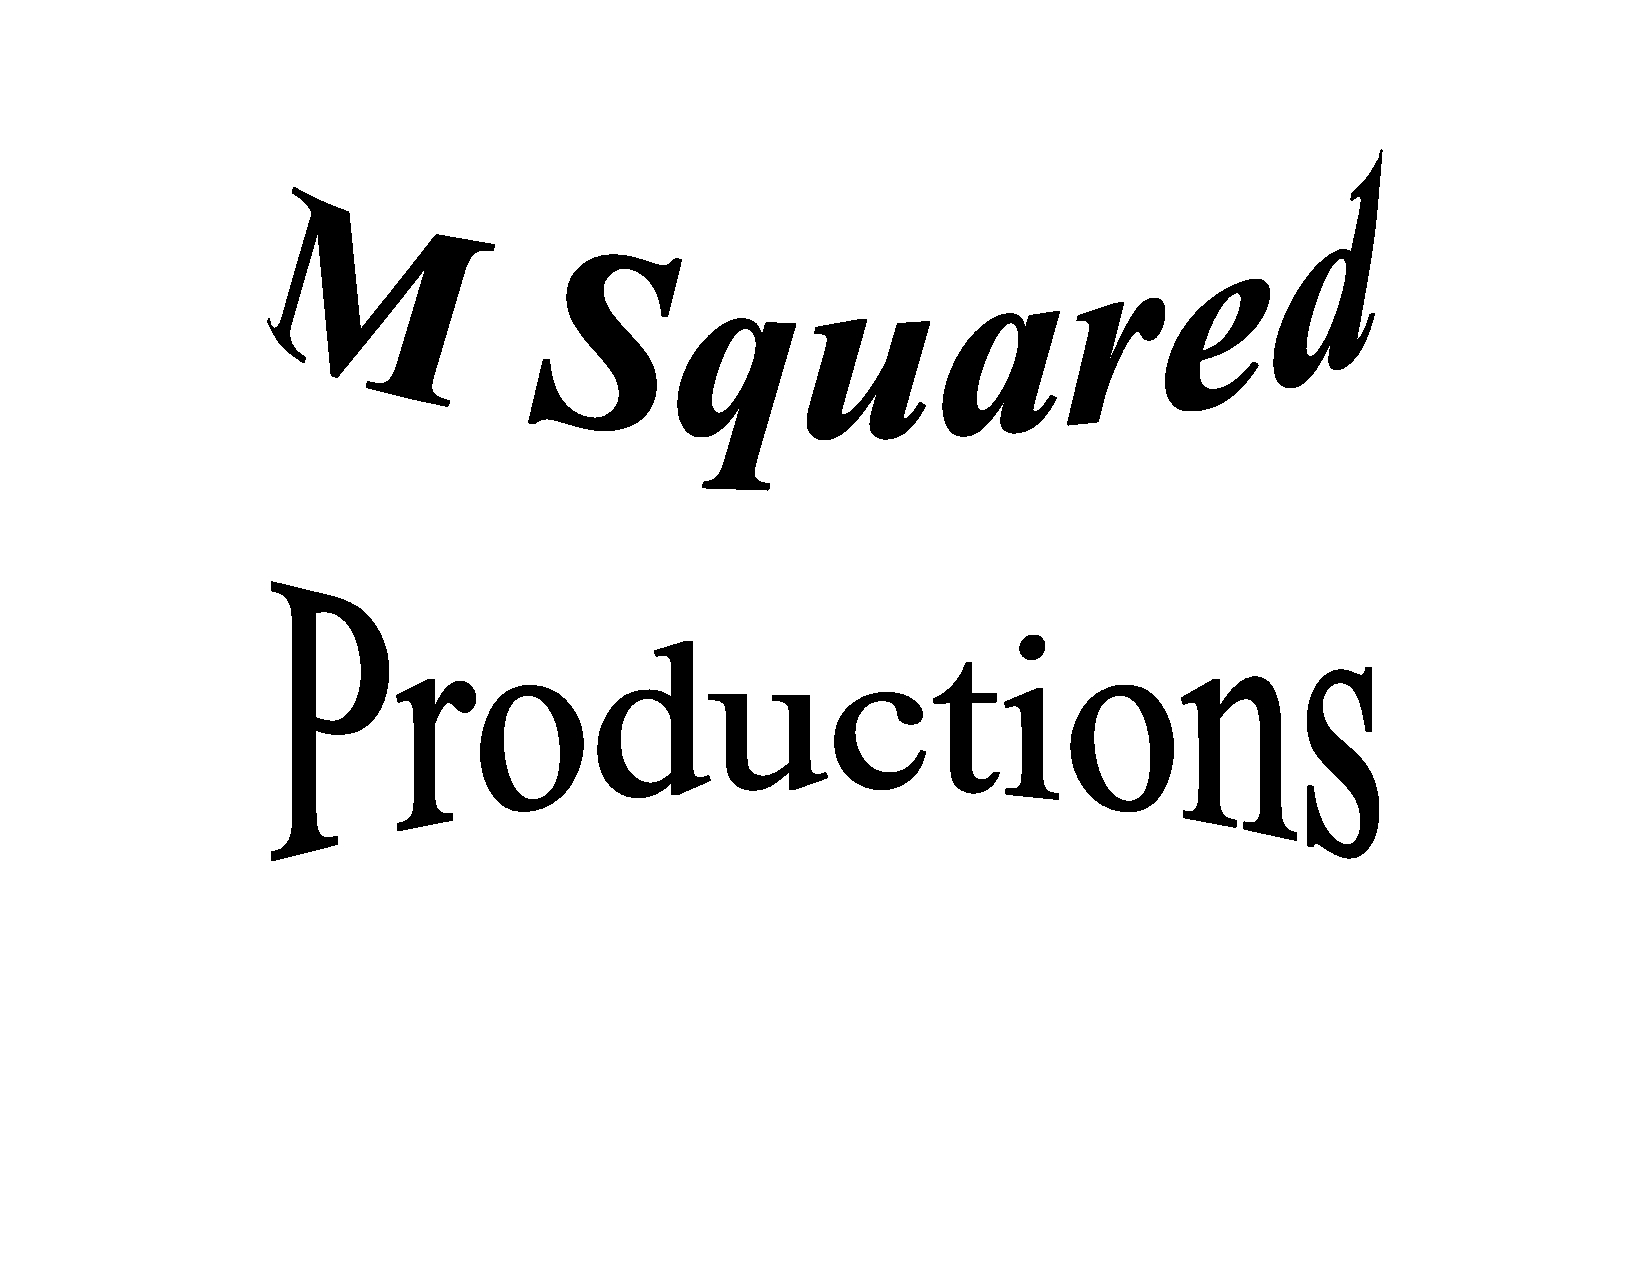 M Squared Productions Podcast show art